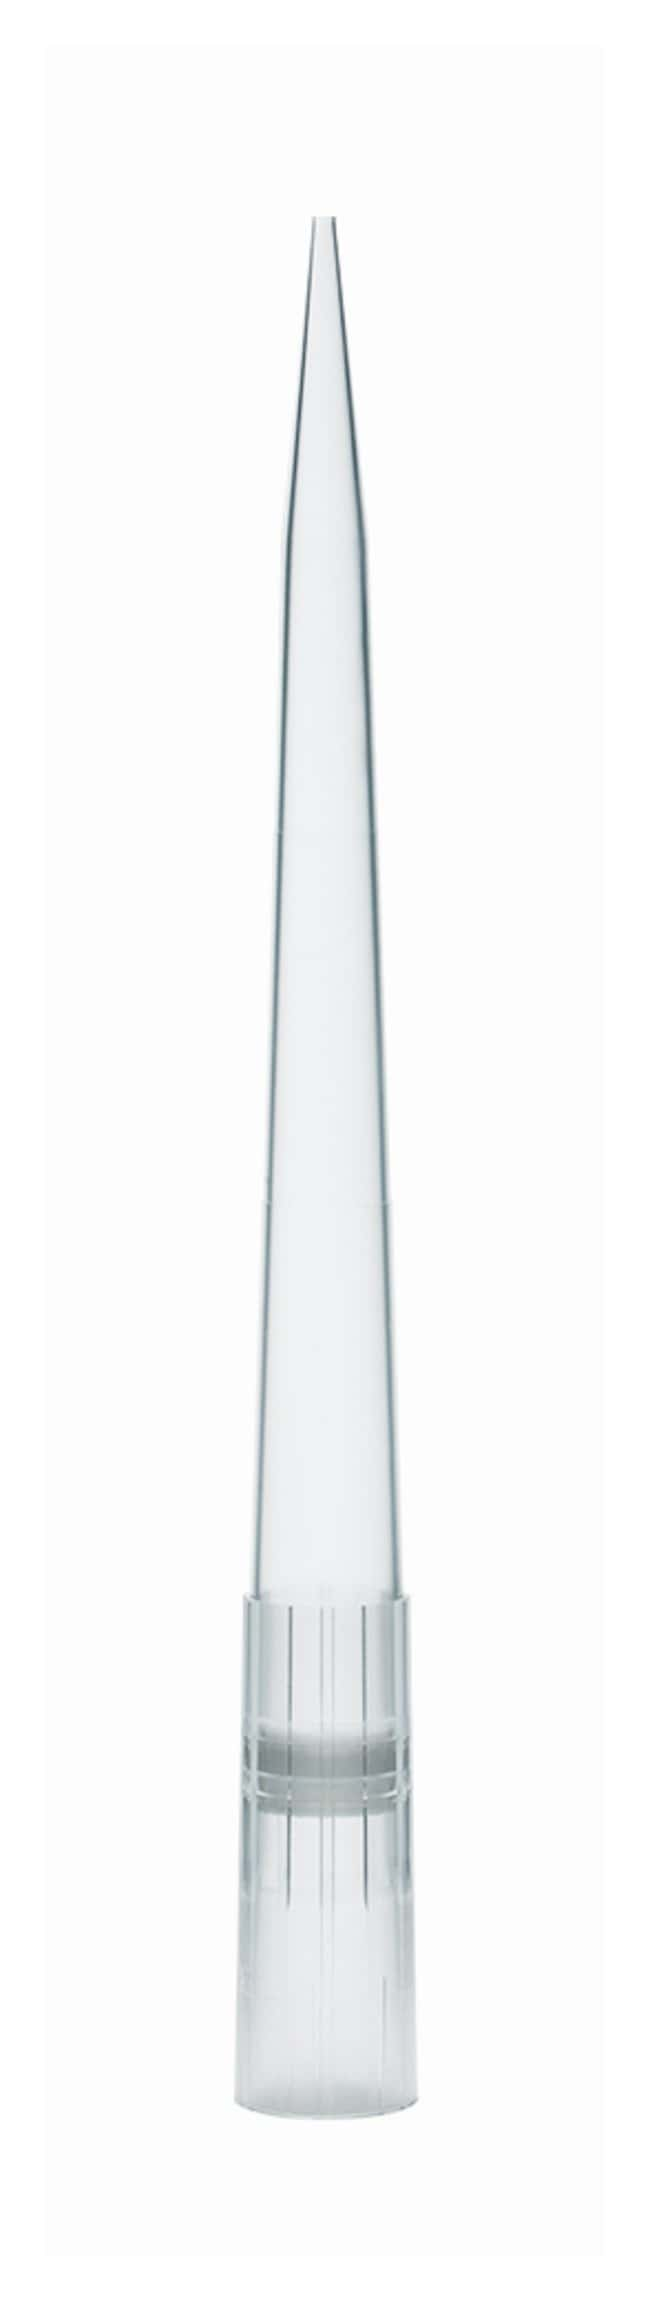 BiotixxTIP Low-Retention Filter Pipette Tips Vol.: 1000μL:Pipette Tips